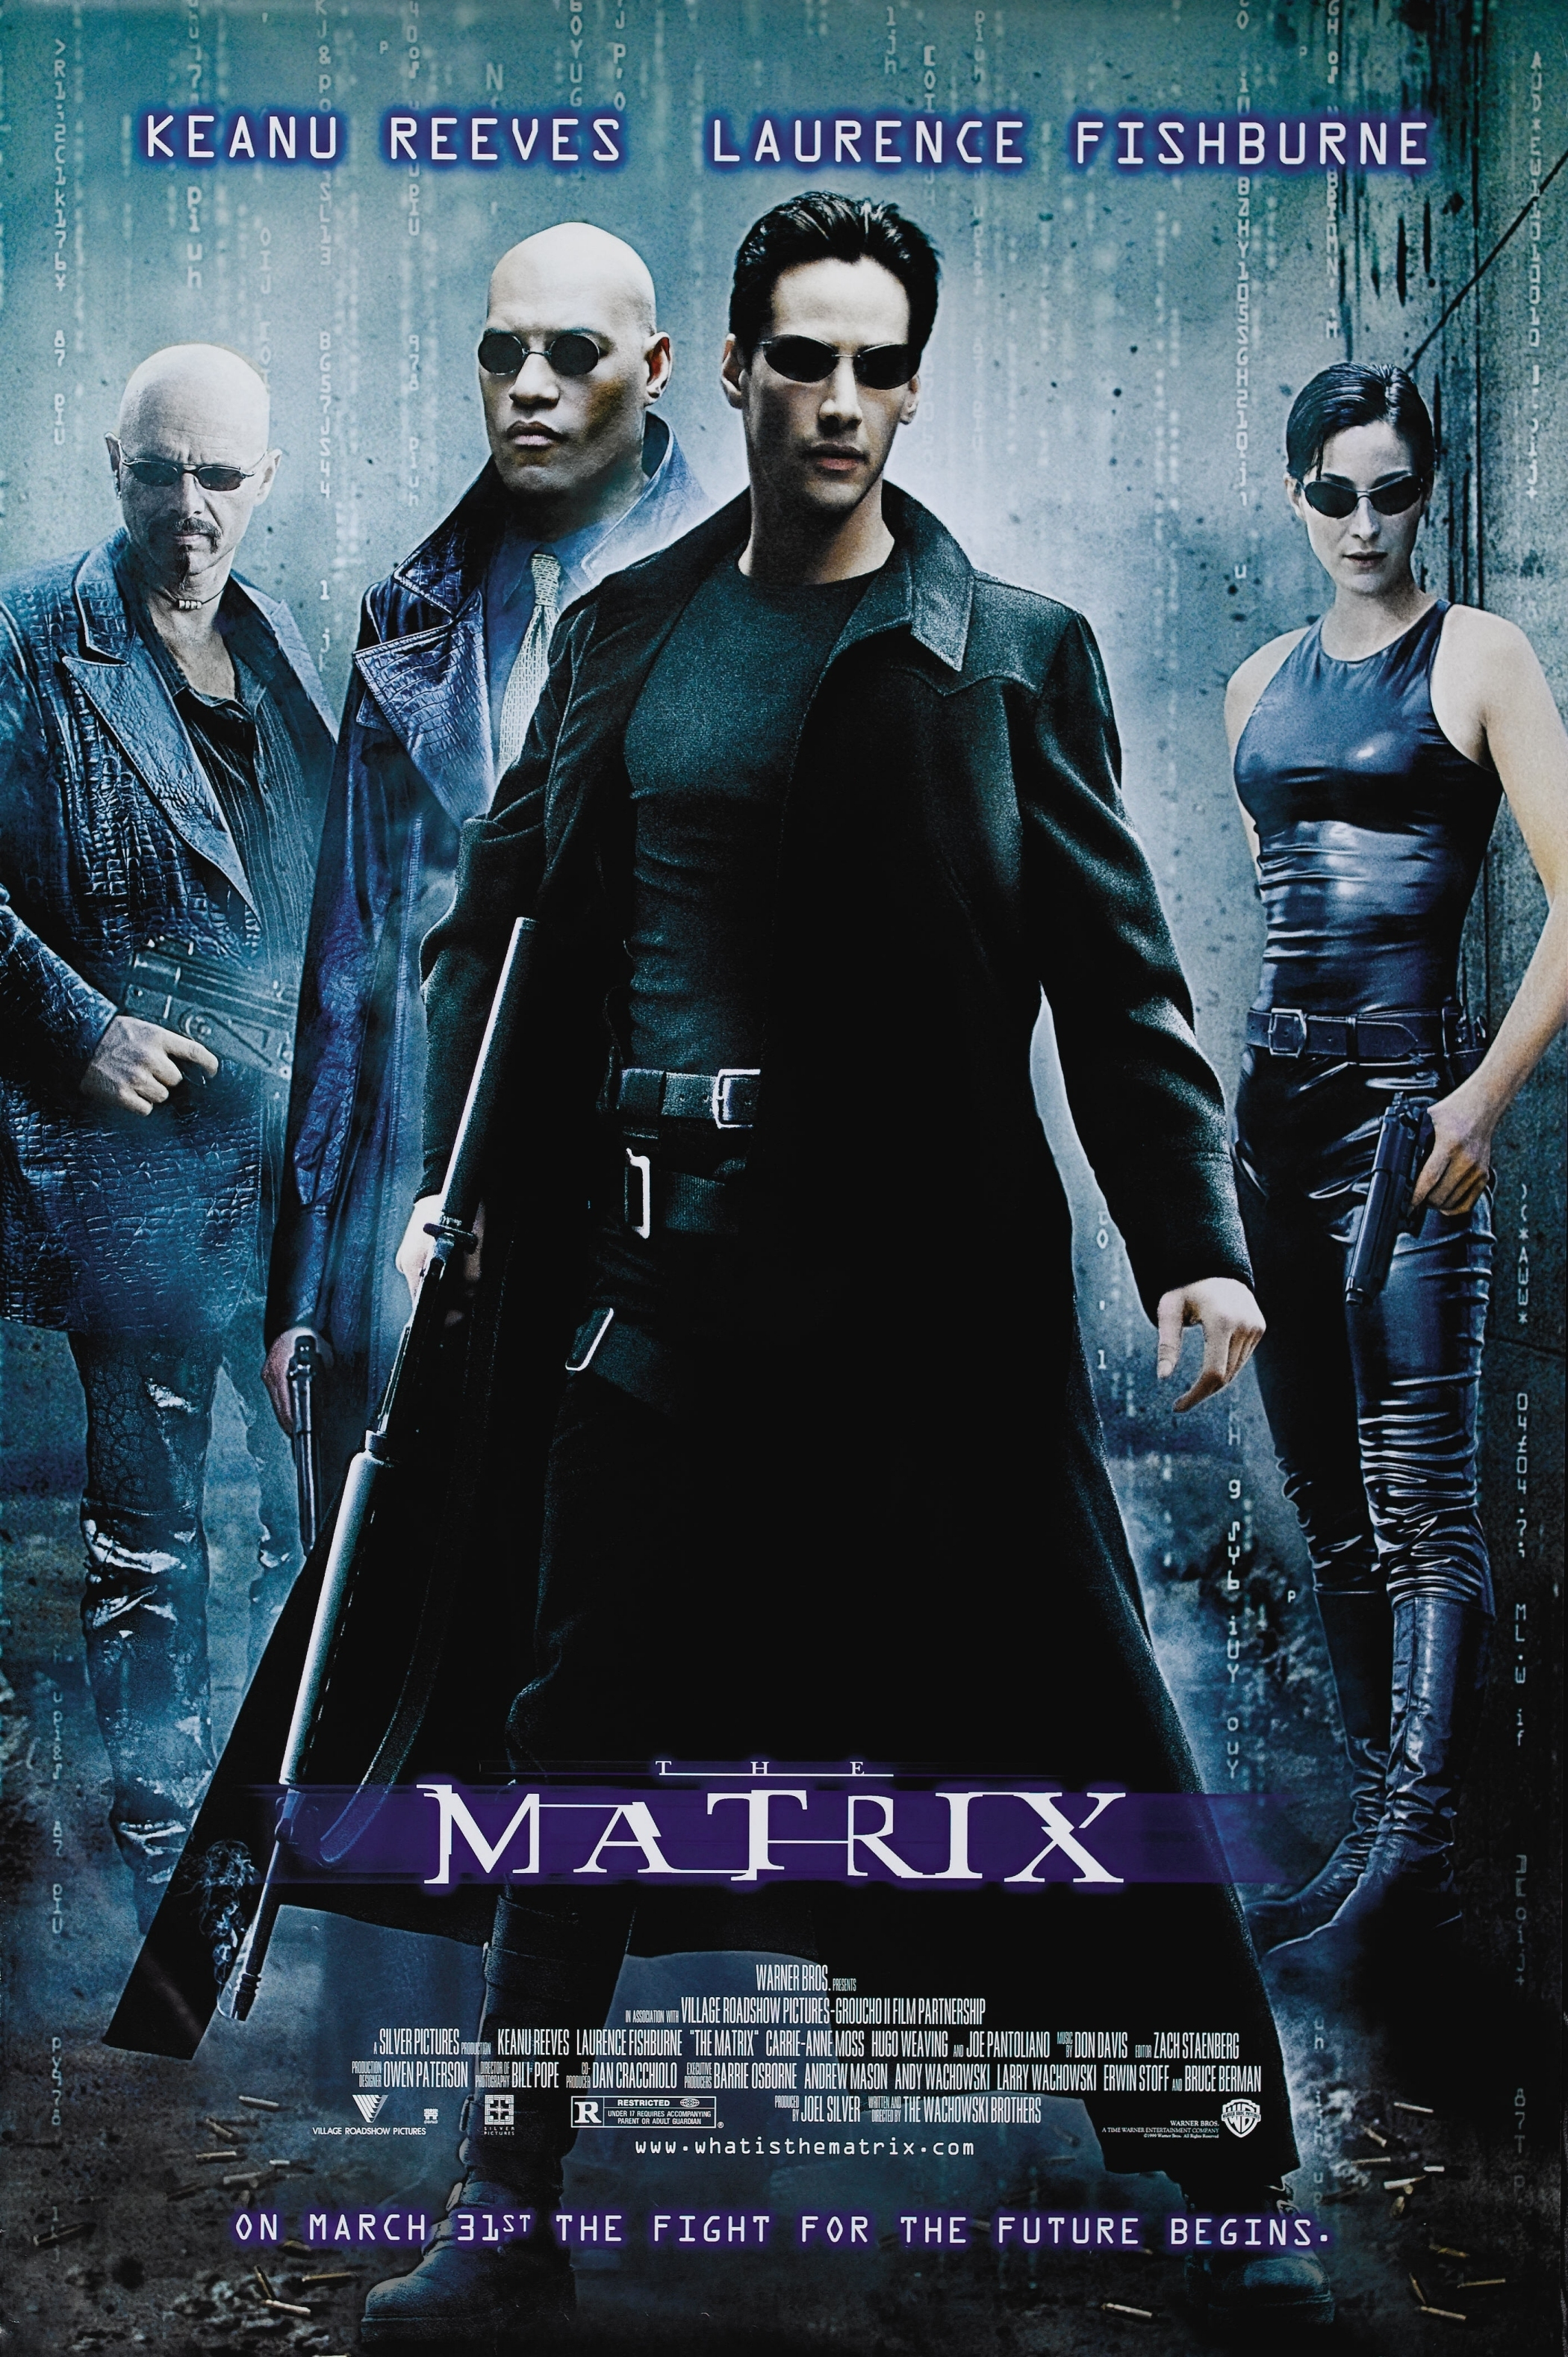 About the future of the Matrix 23